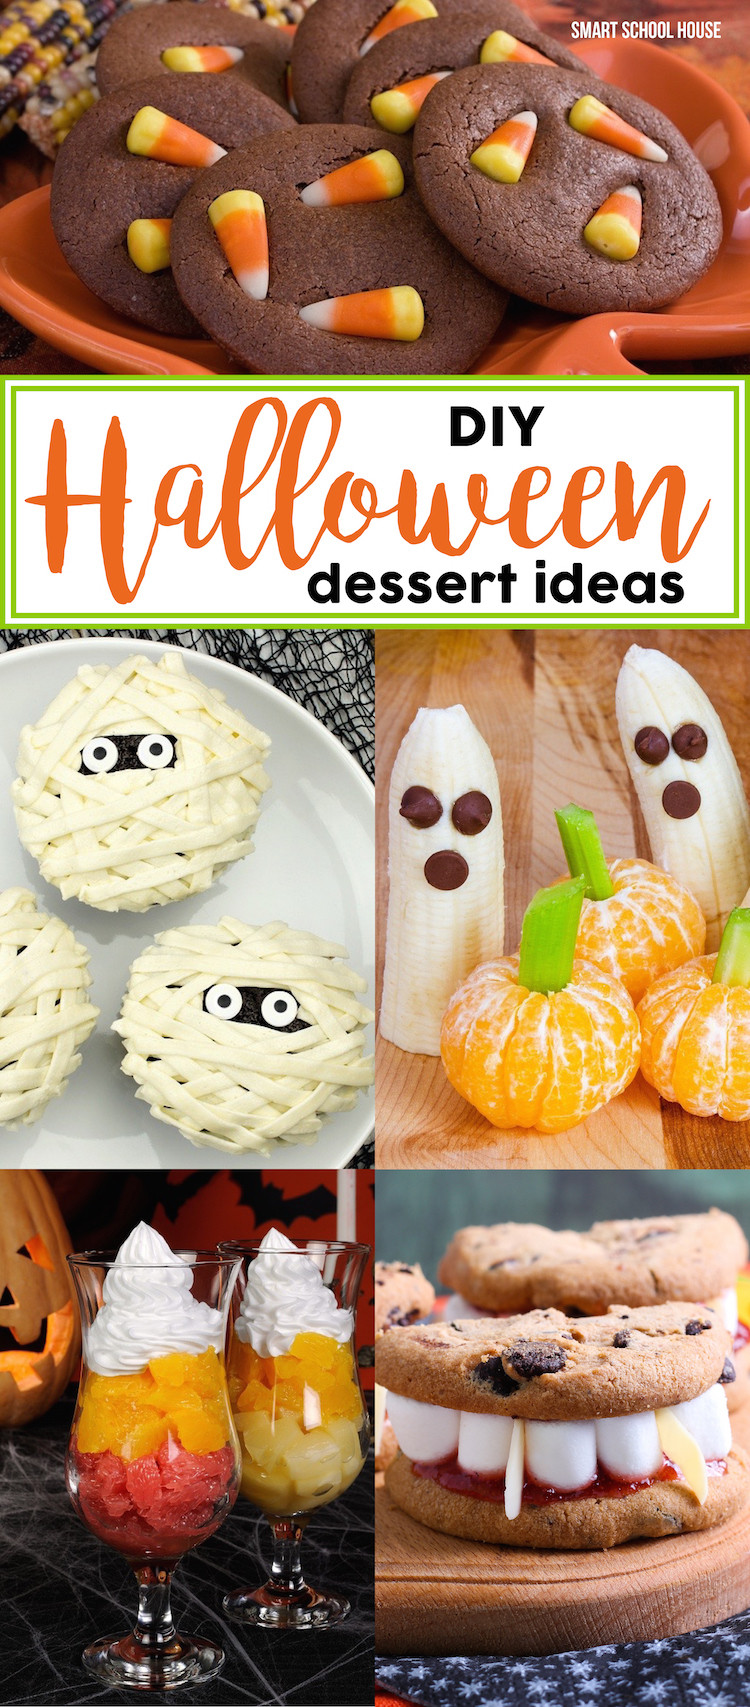 Diy Halloween Desserts  Halloween Dessert Ideas Smart School House